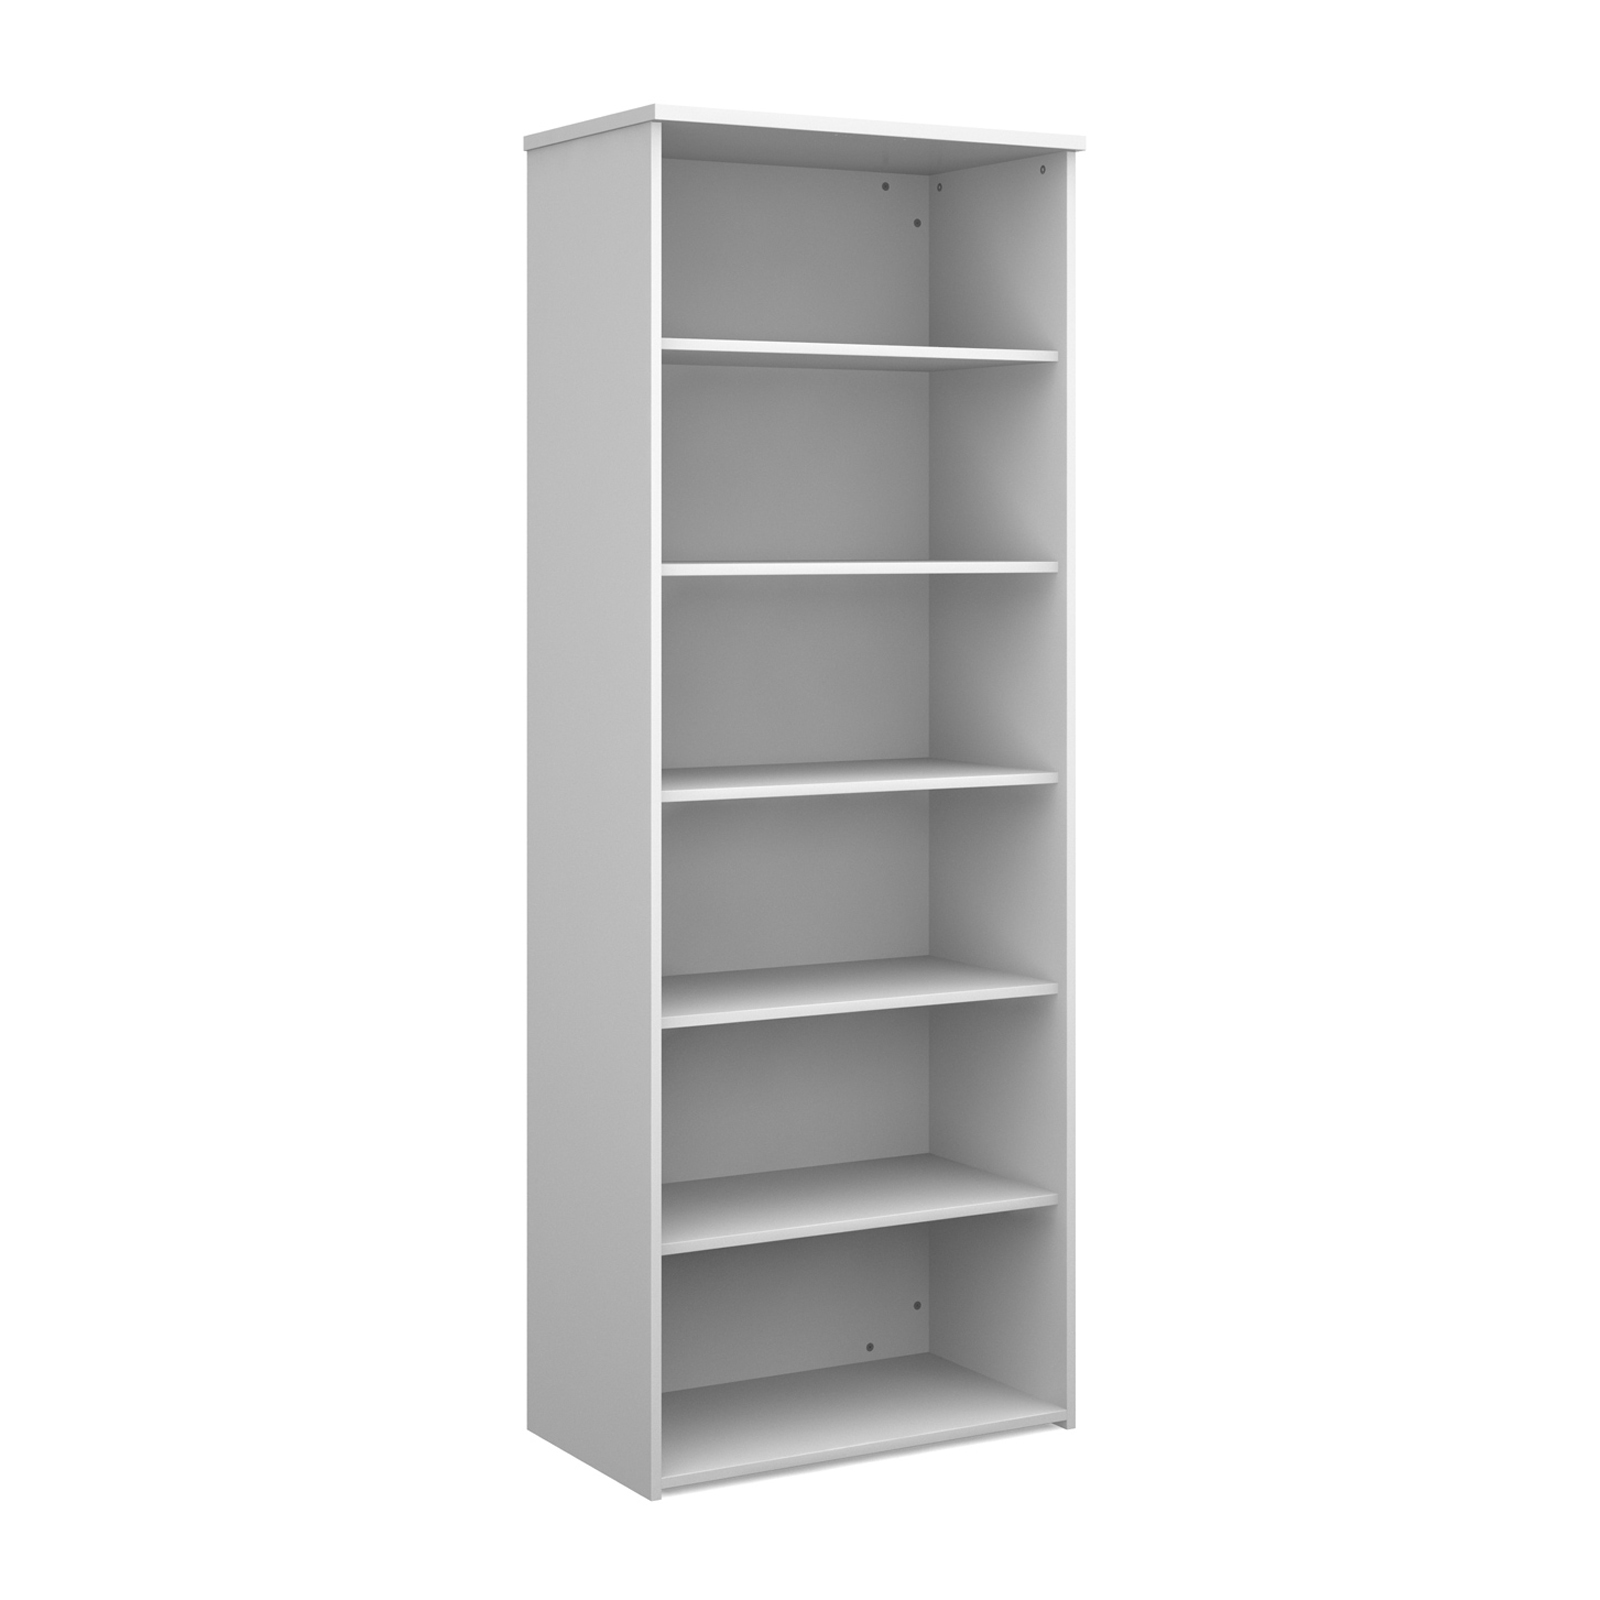 Over 1200mm High Universal bookcase 2140mm high with 5 shelves - white